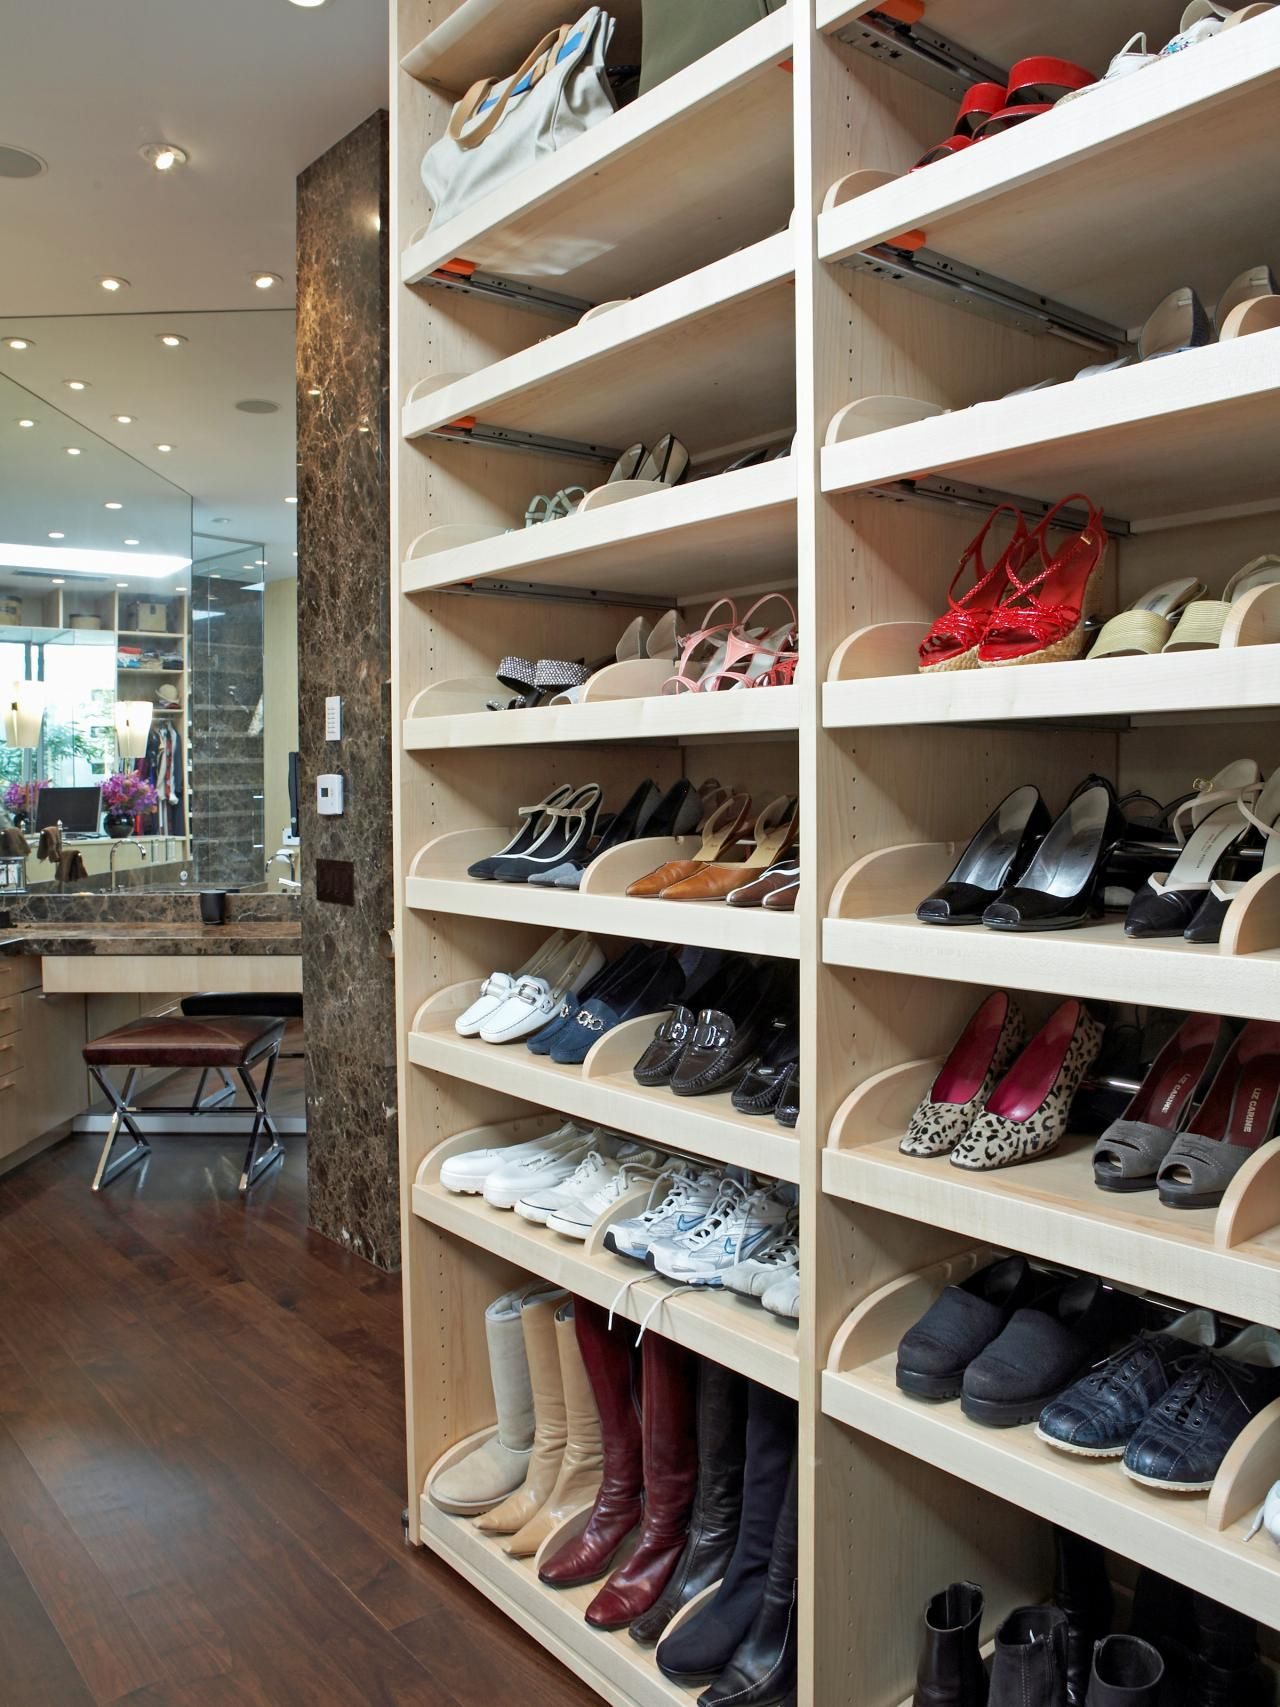 Here shoes are displayed on angled shelves organized by